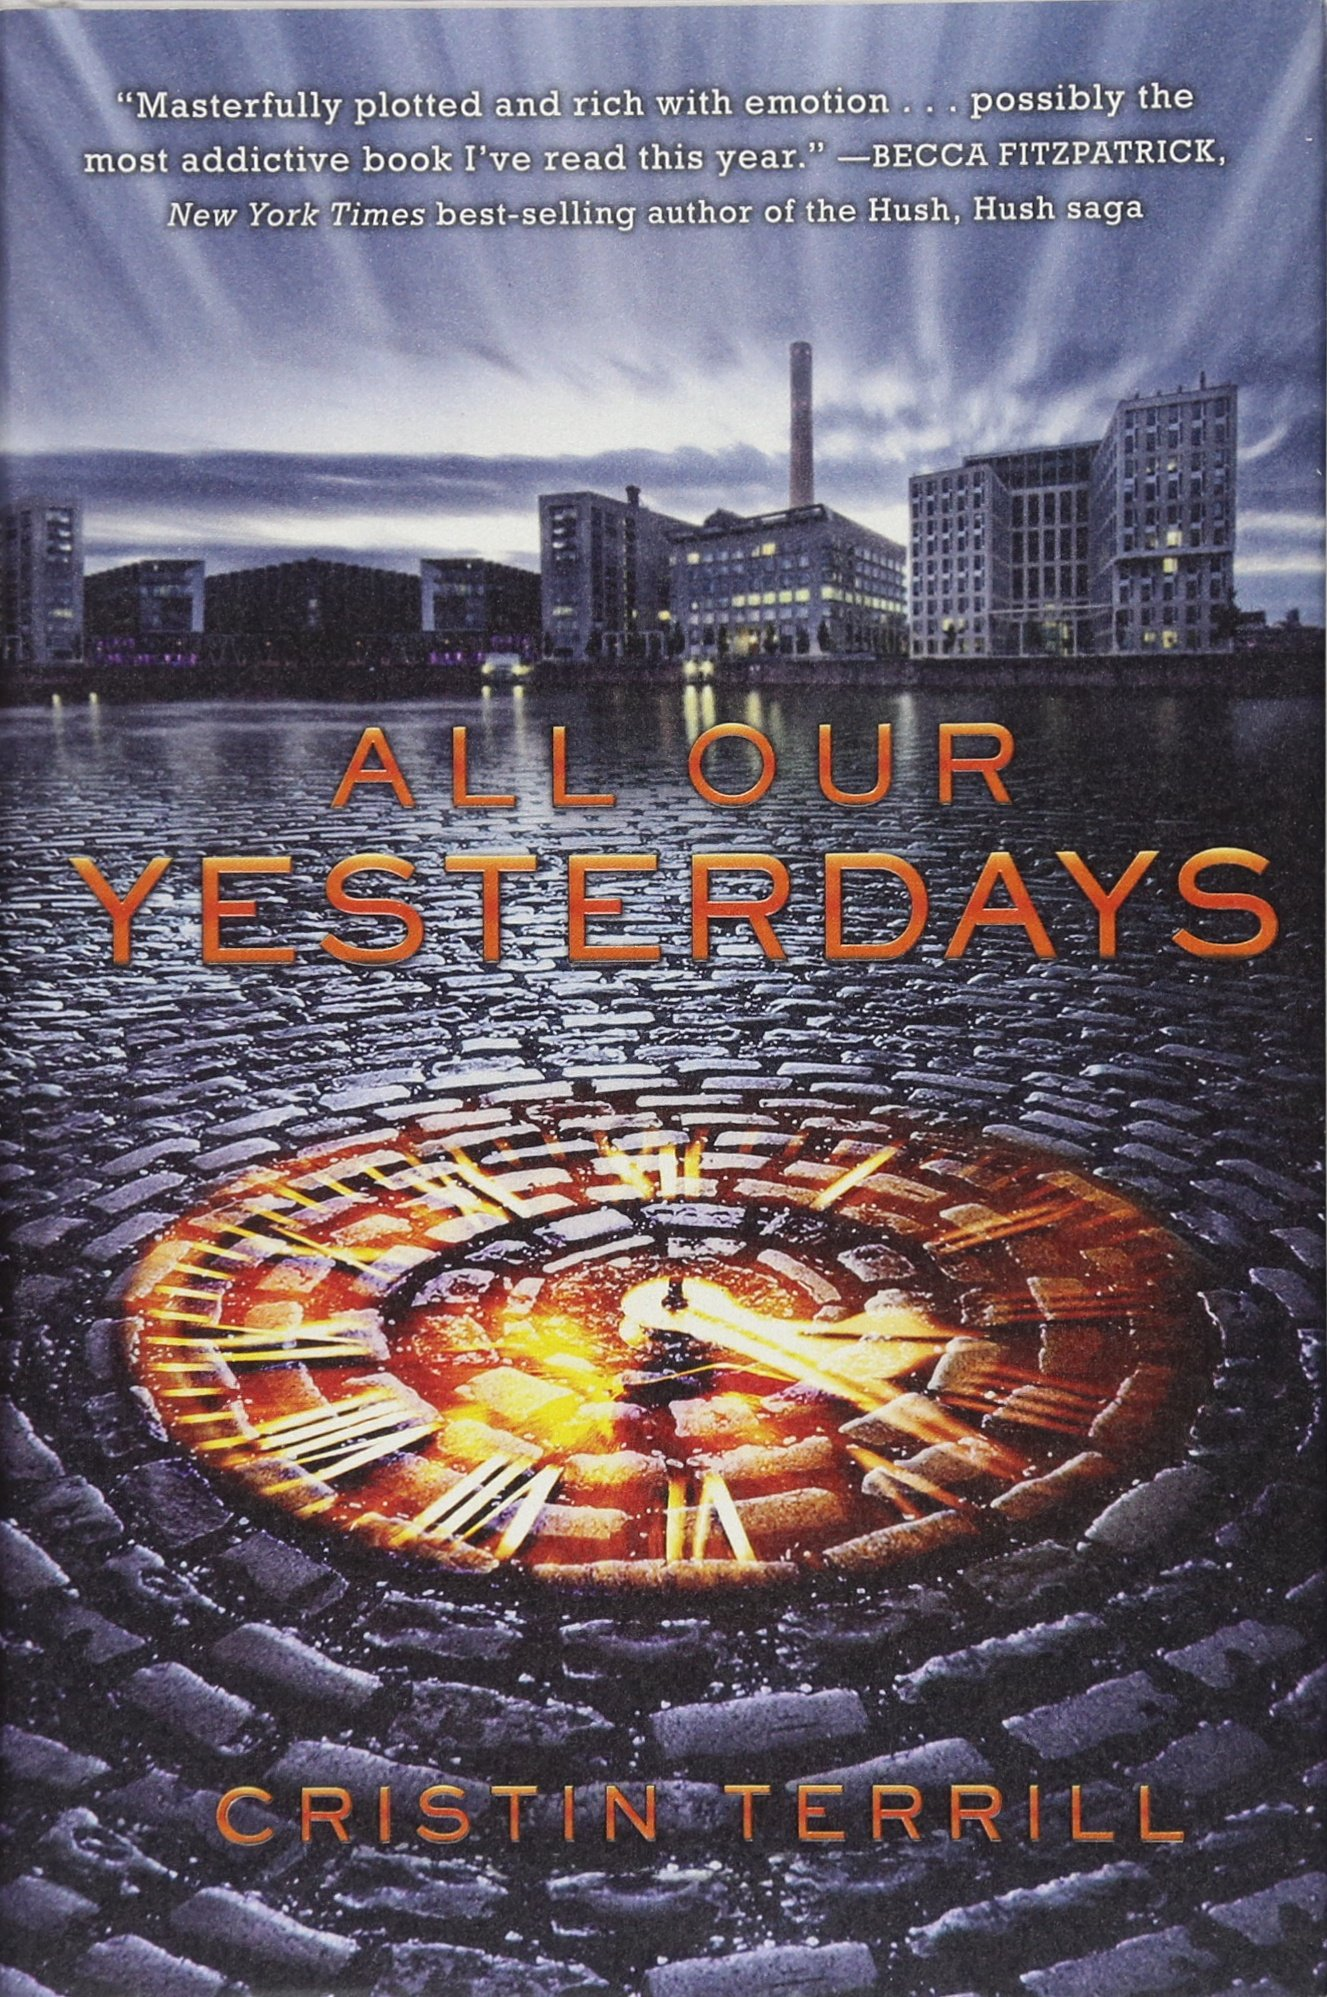 Amazon.com: All Our Yesterdays (9781423176374): Cristin ...